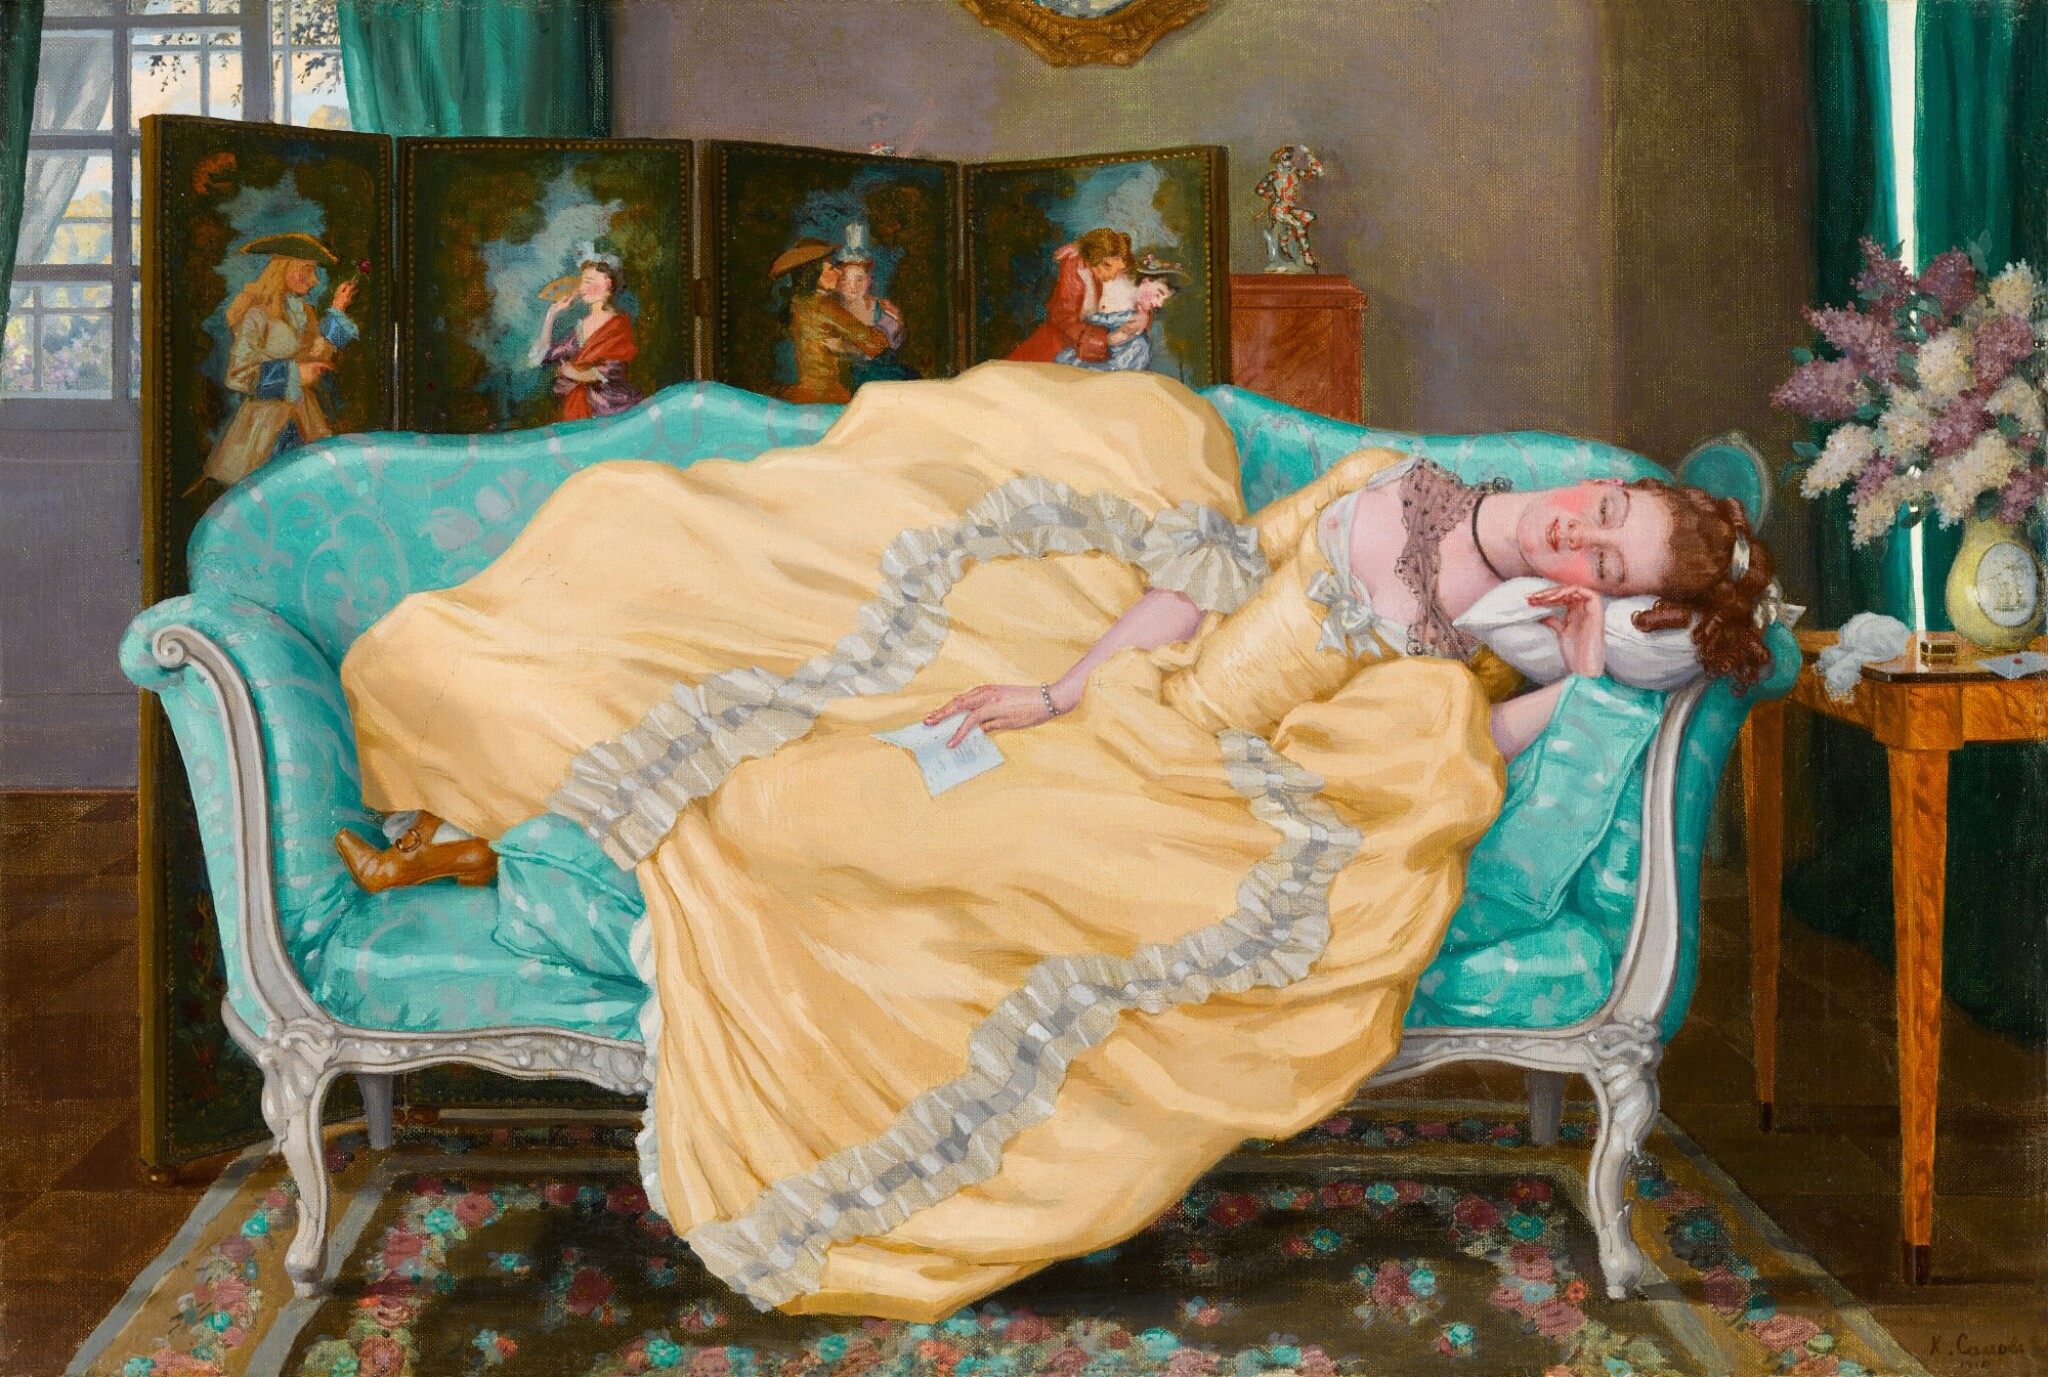 View full screen - View 1 of Lot 59. Sleeping Lady in a Room in 18th Century Dress.